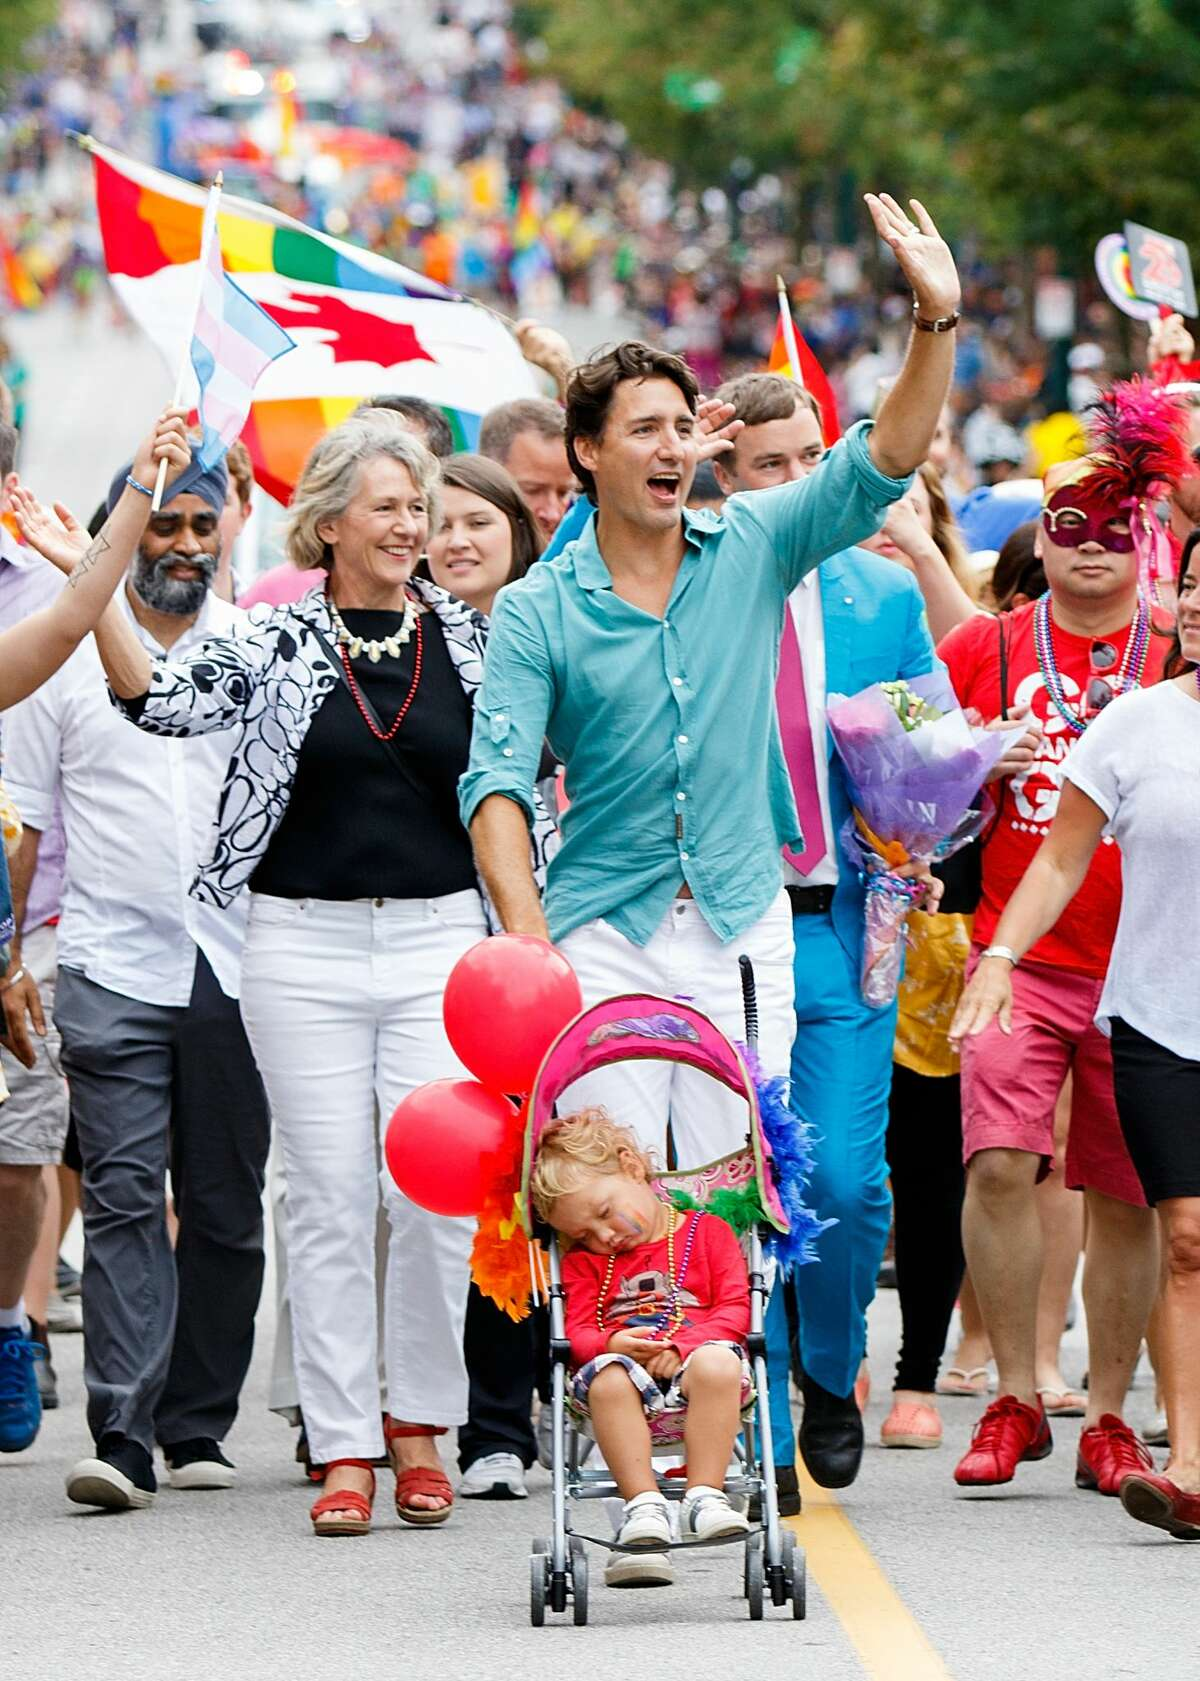 Prime Minister of Canada Justin Trudeau (C) pushes his youngest son Hadrien Trudeau in a stroller during the 38th Annual Vancouver Pride Parade on July 31, 2016 in Vancouver, Canada. (Photo by Andrew Chin/Getty Images)